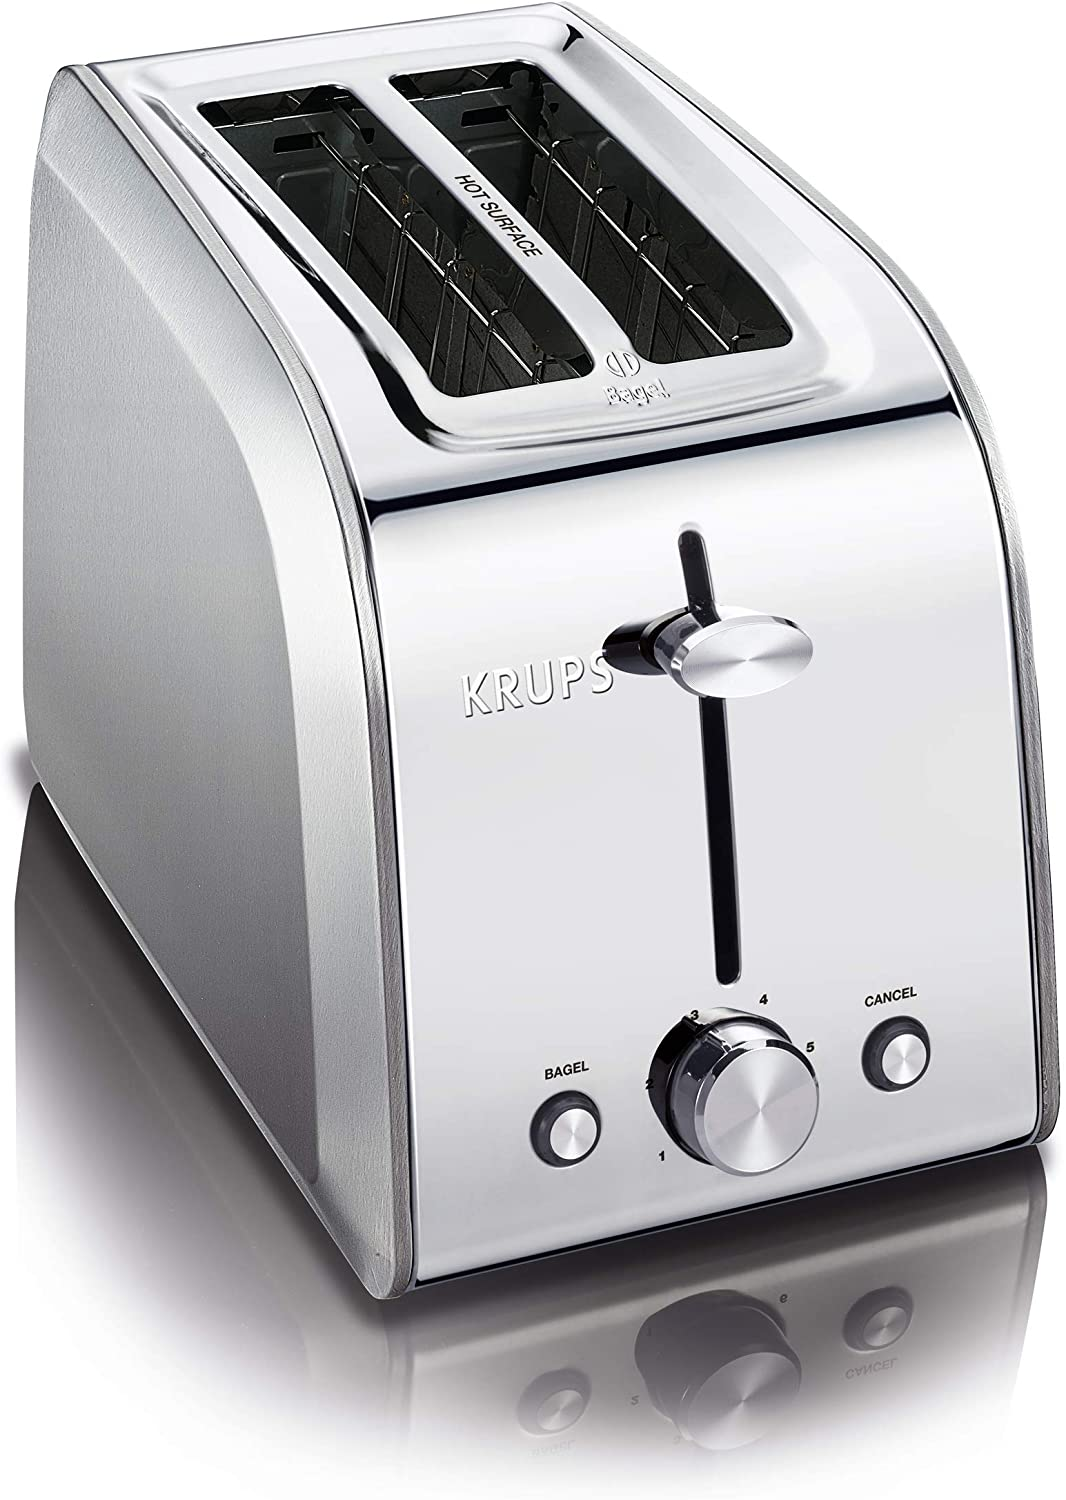 KRUPS KH250D51 Stainless Steel Toaster